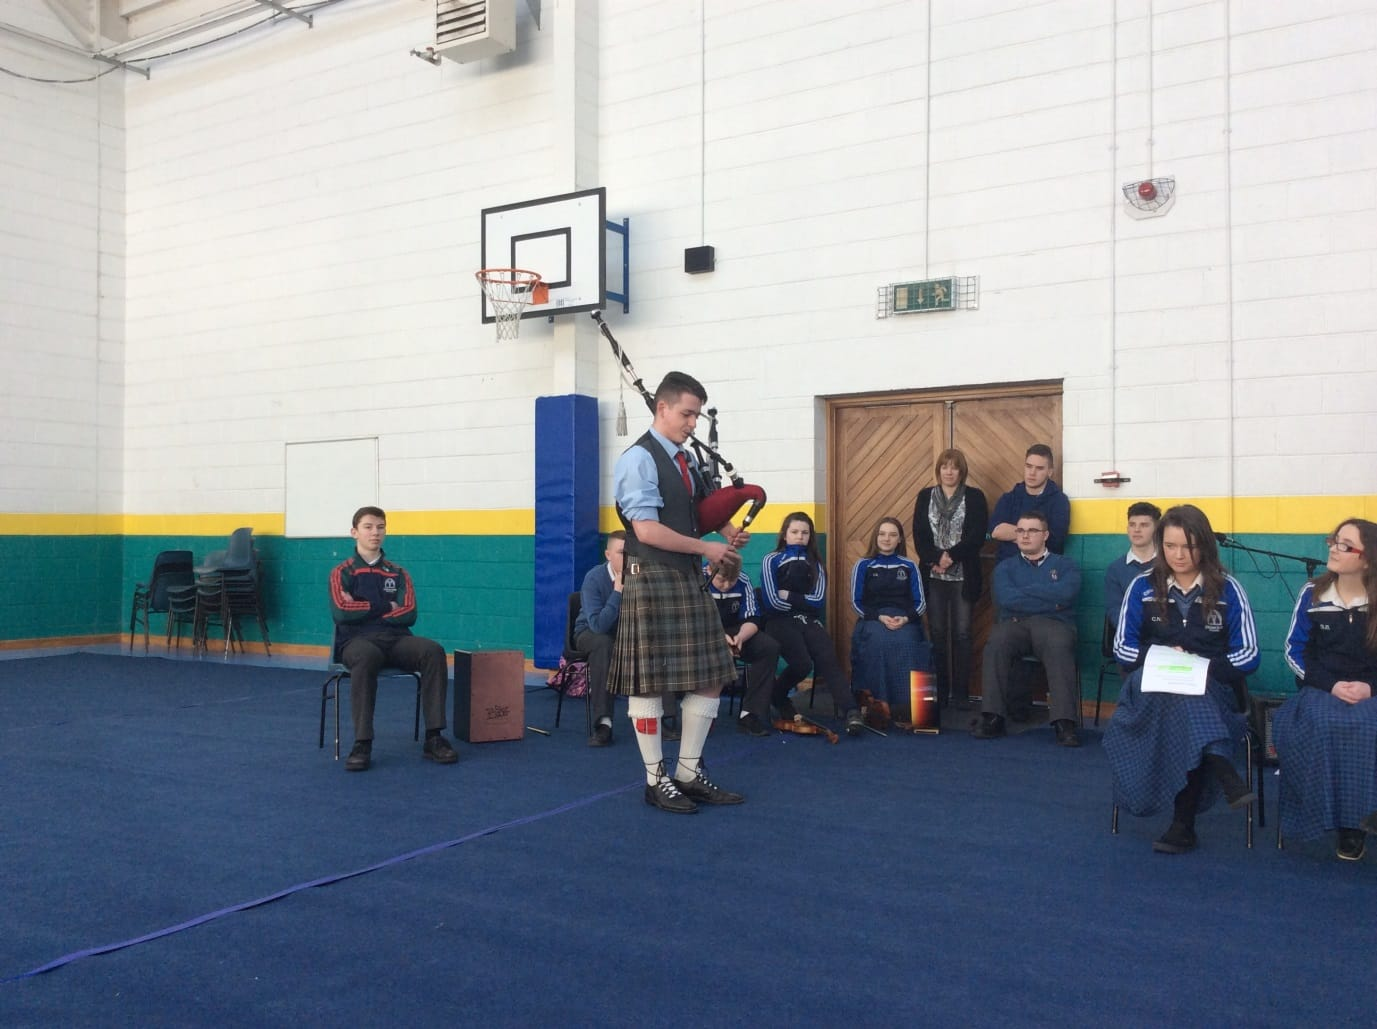 March 2016: Johnny Hunt treated us to some fantastic bagpipe playing during the 1916 commemoration in Desmond College